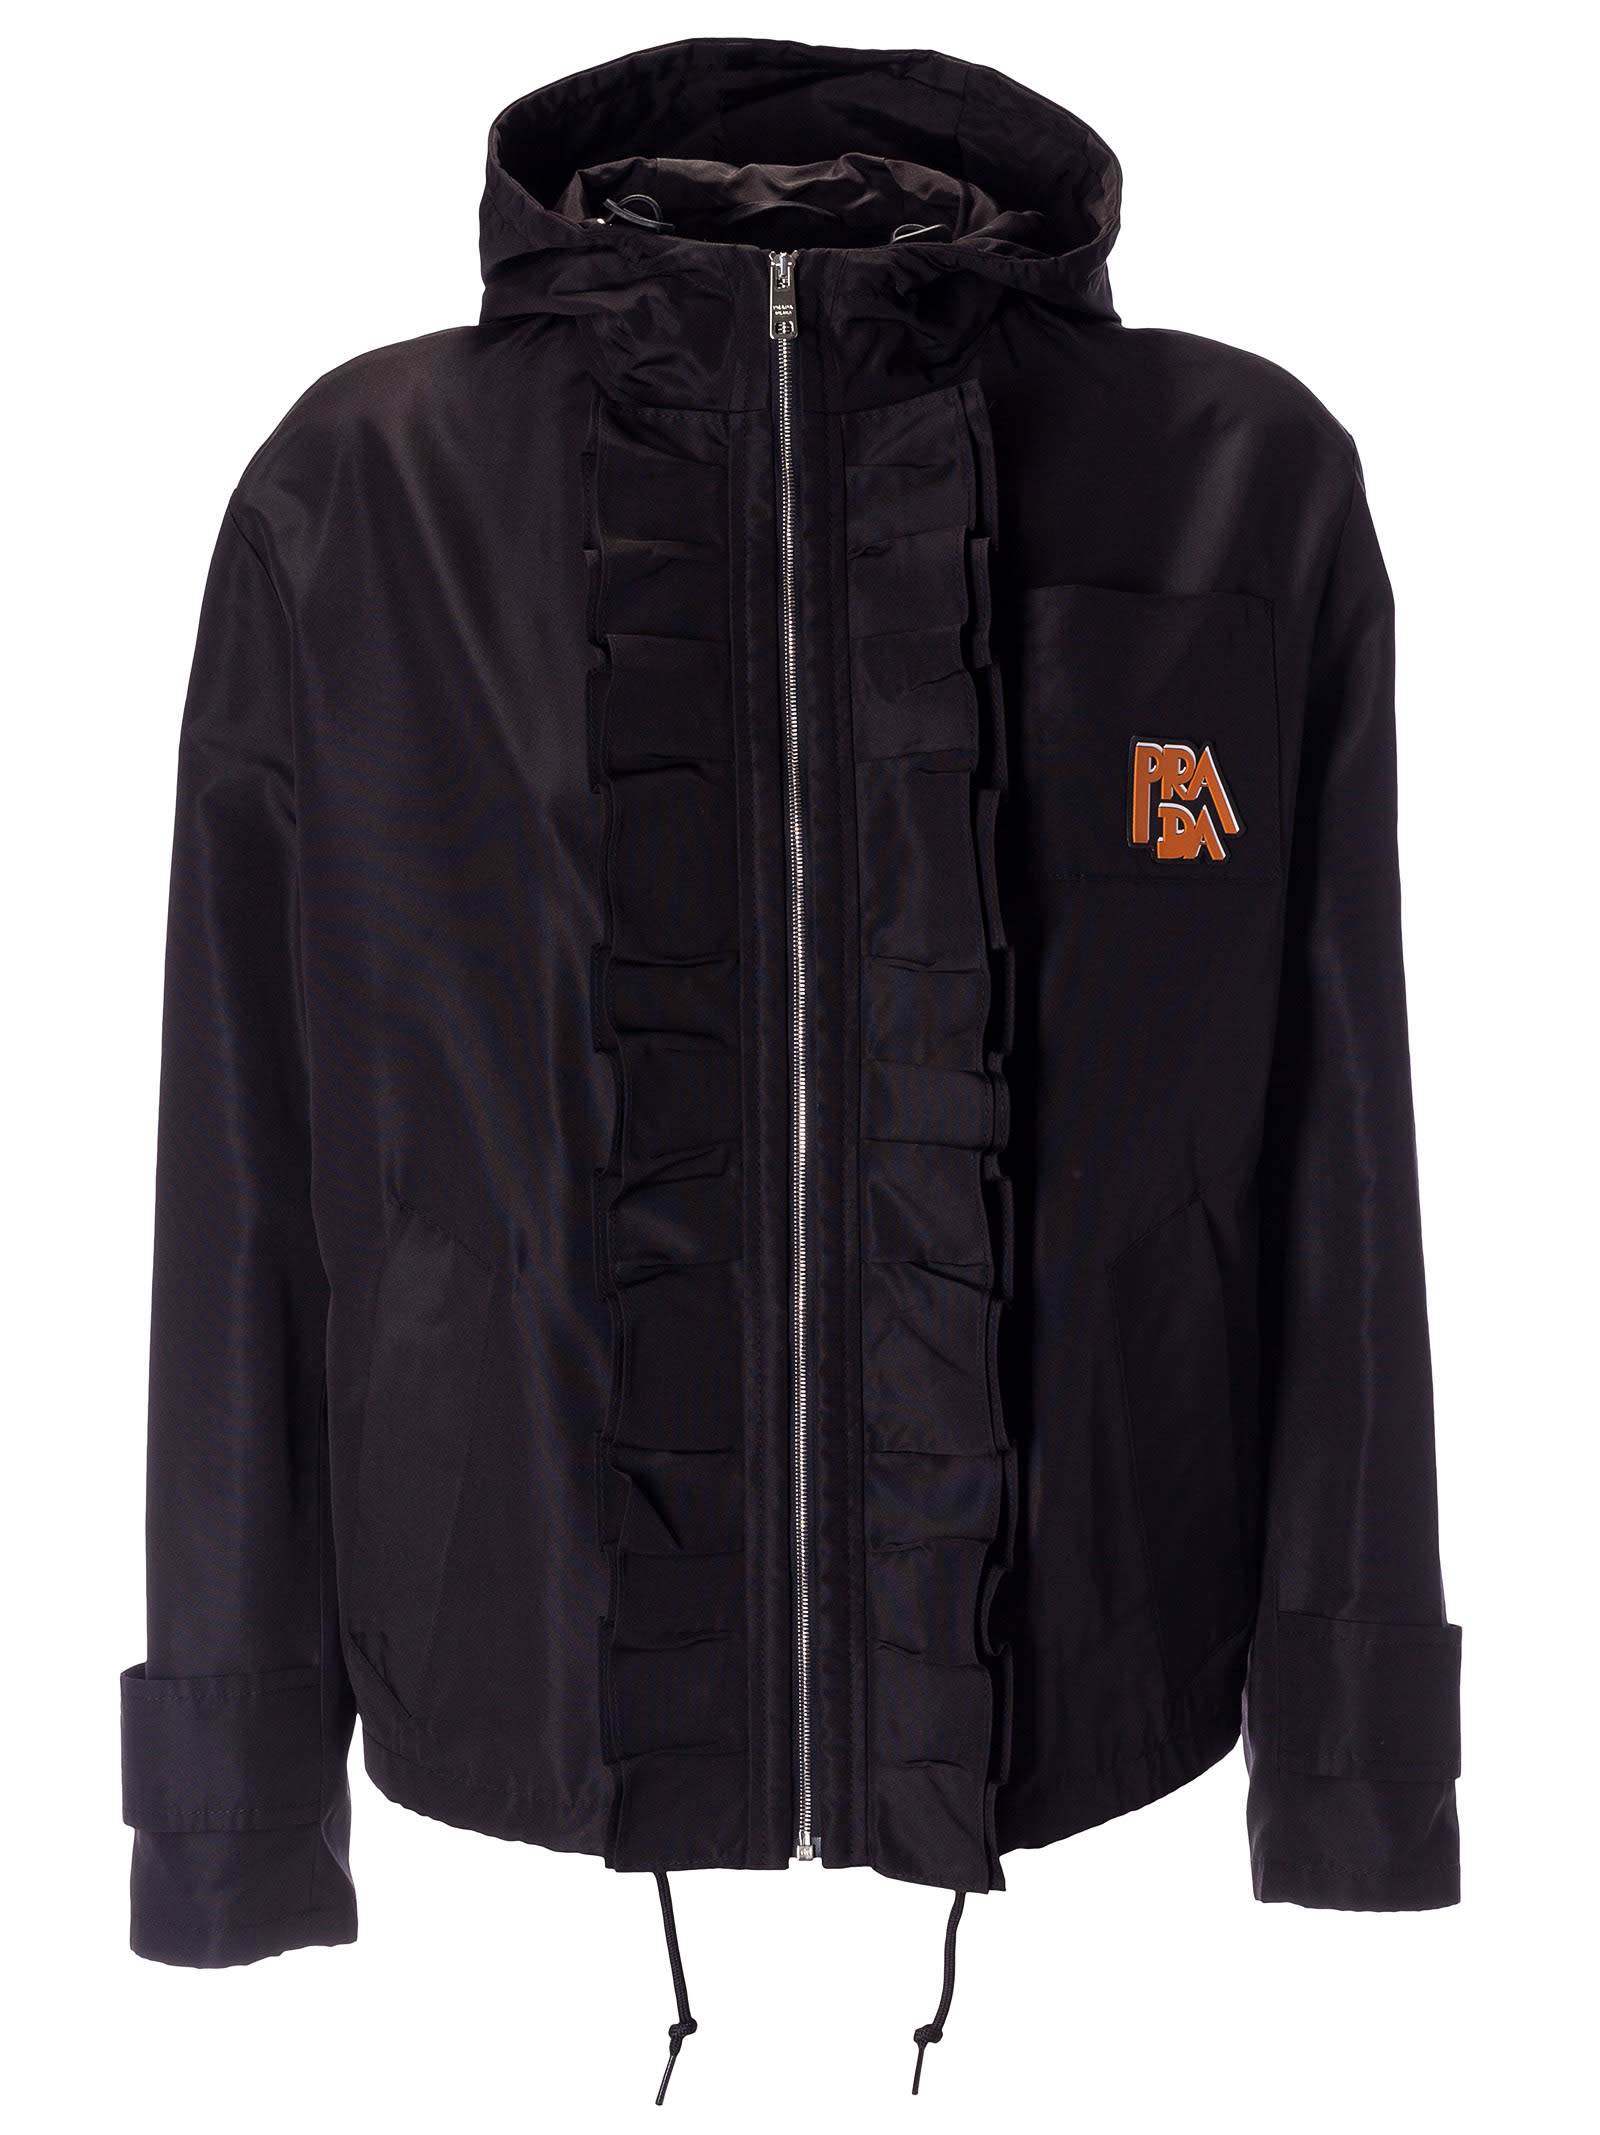 Prada Ruffled Detail Windbreaker